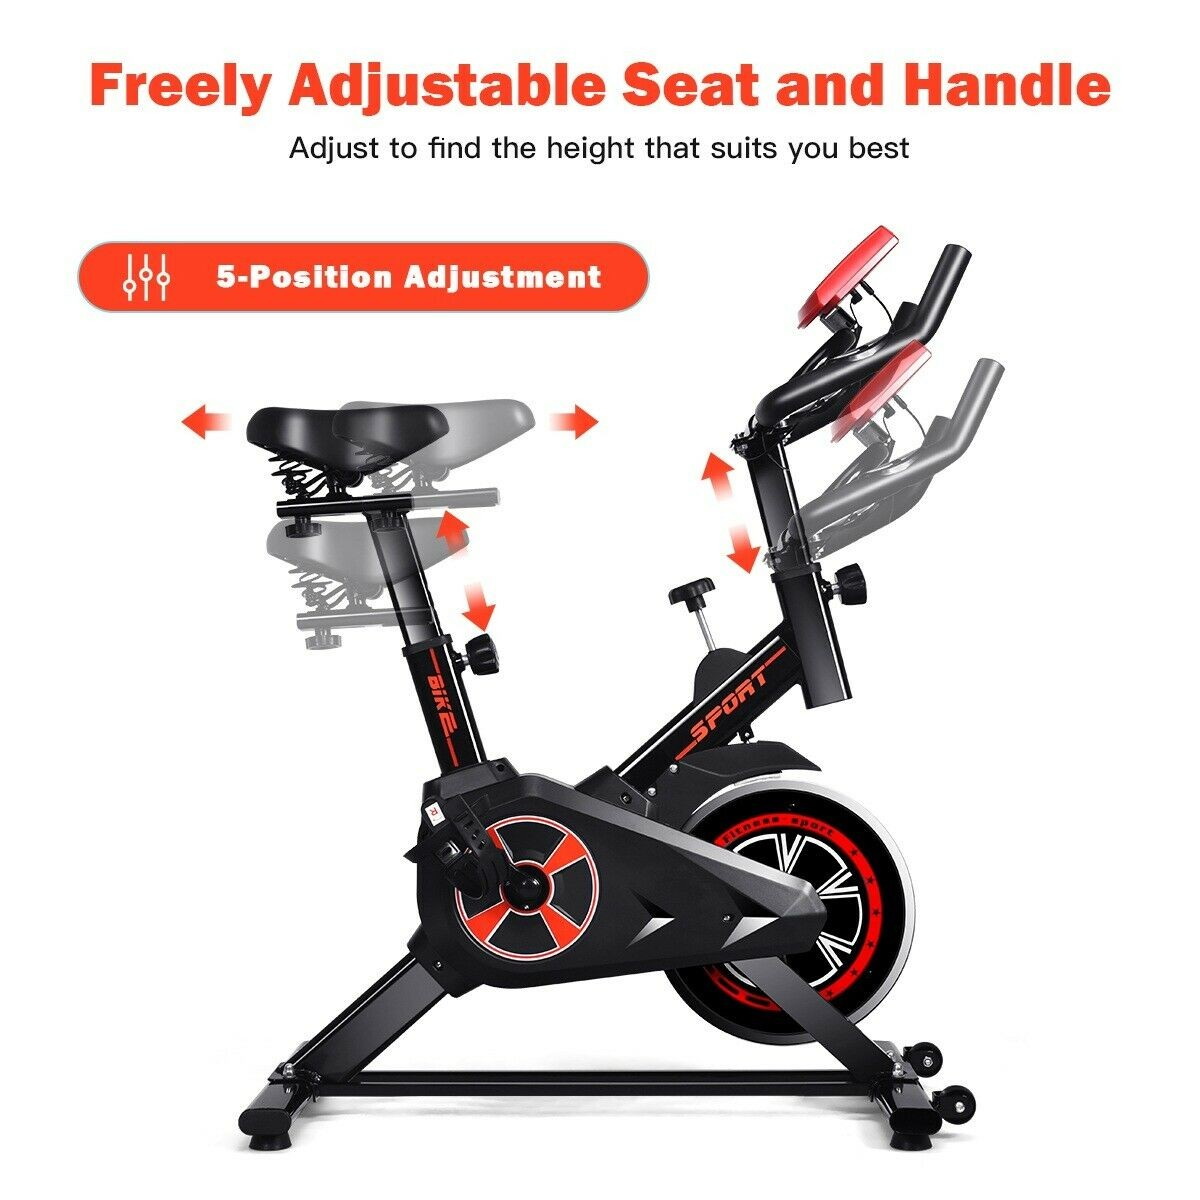 LCD Display Indoor Cycling Gym Cardio Trainer